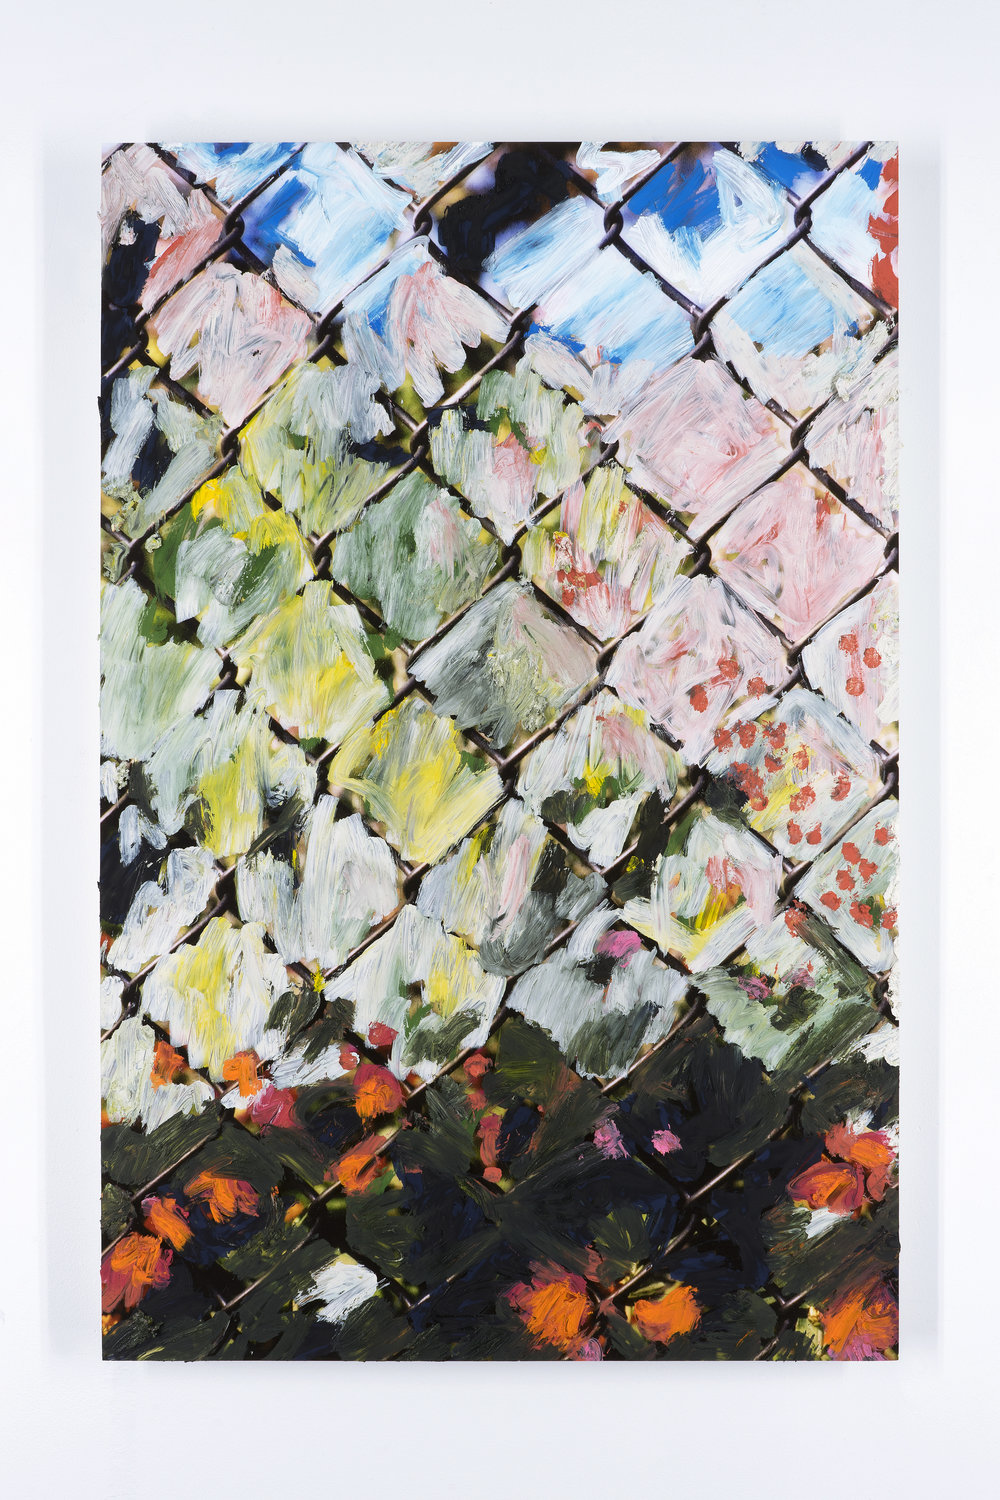 Untitled (Fence 2)   Oil paint on mounted inkjet print  2017